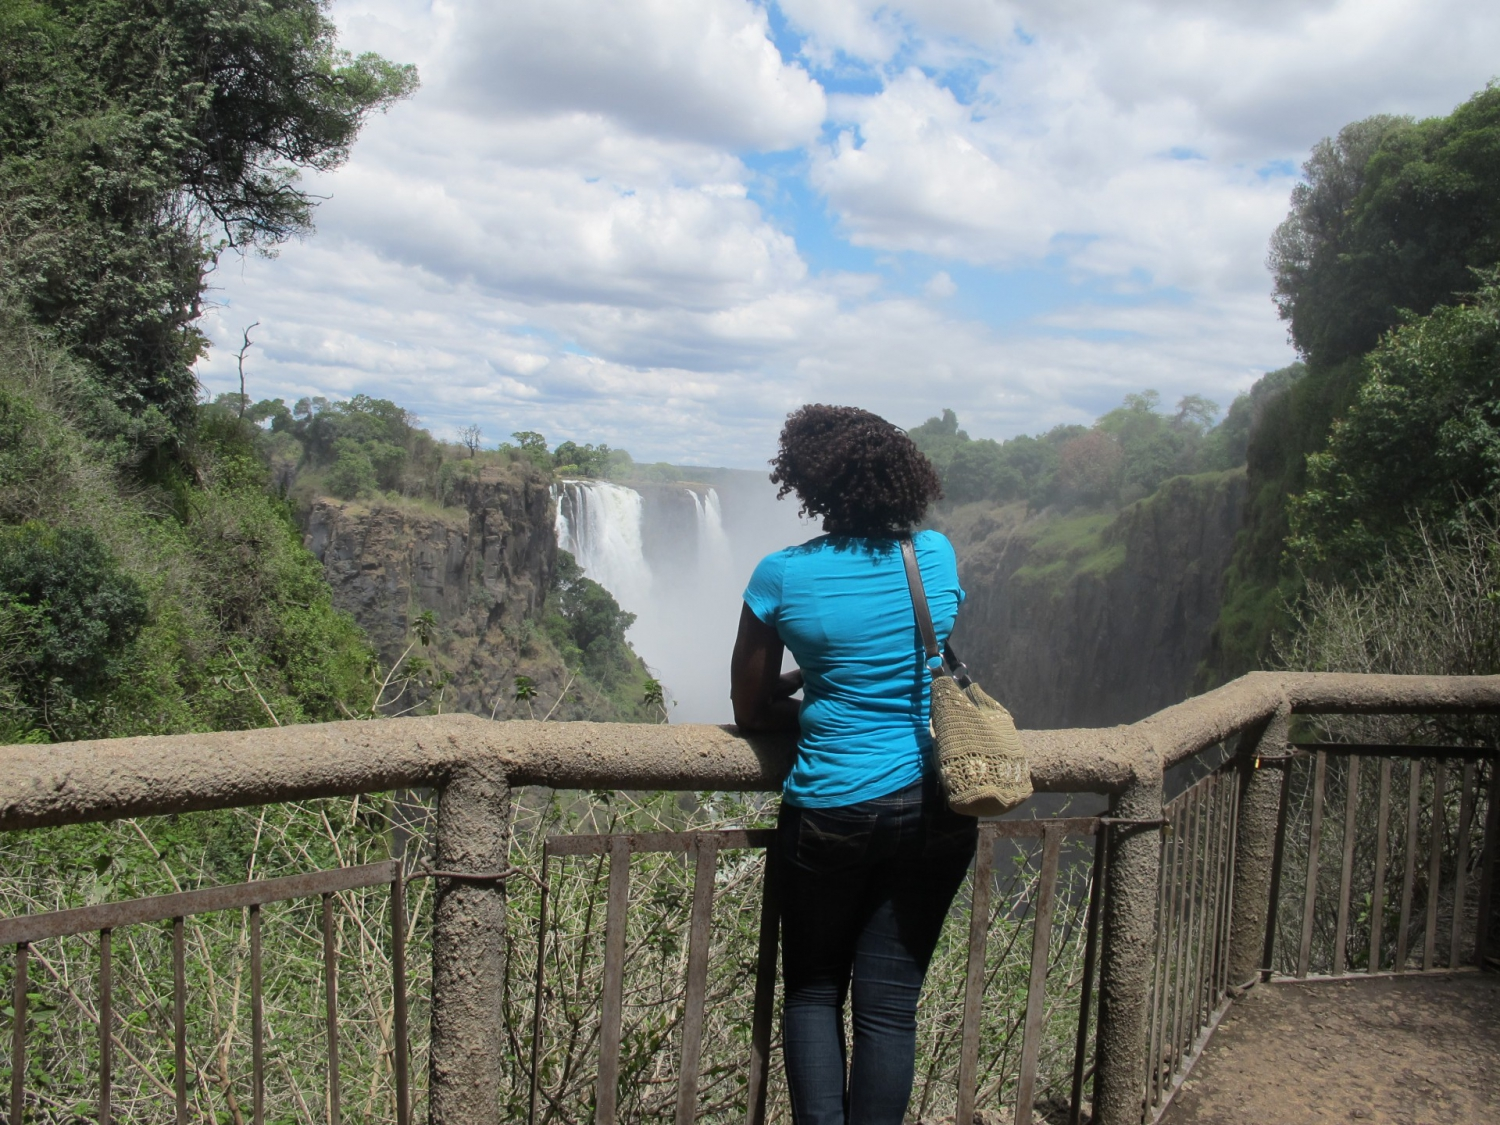 5 things you can do in Zimbabwe that will make your trip special